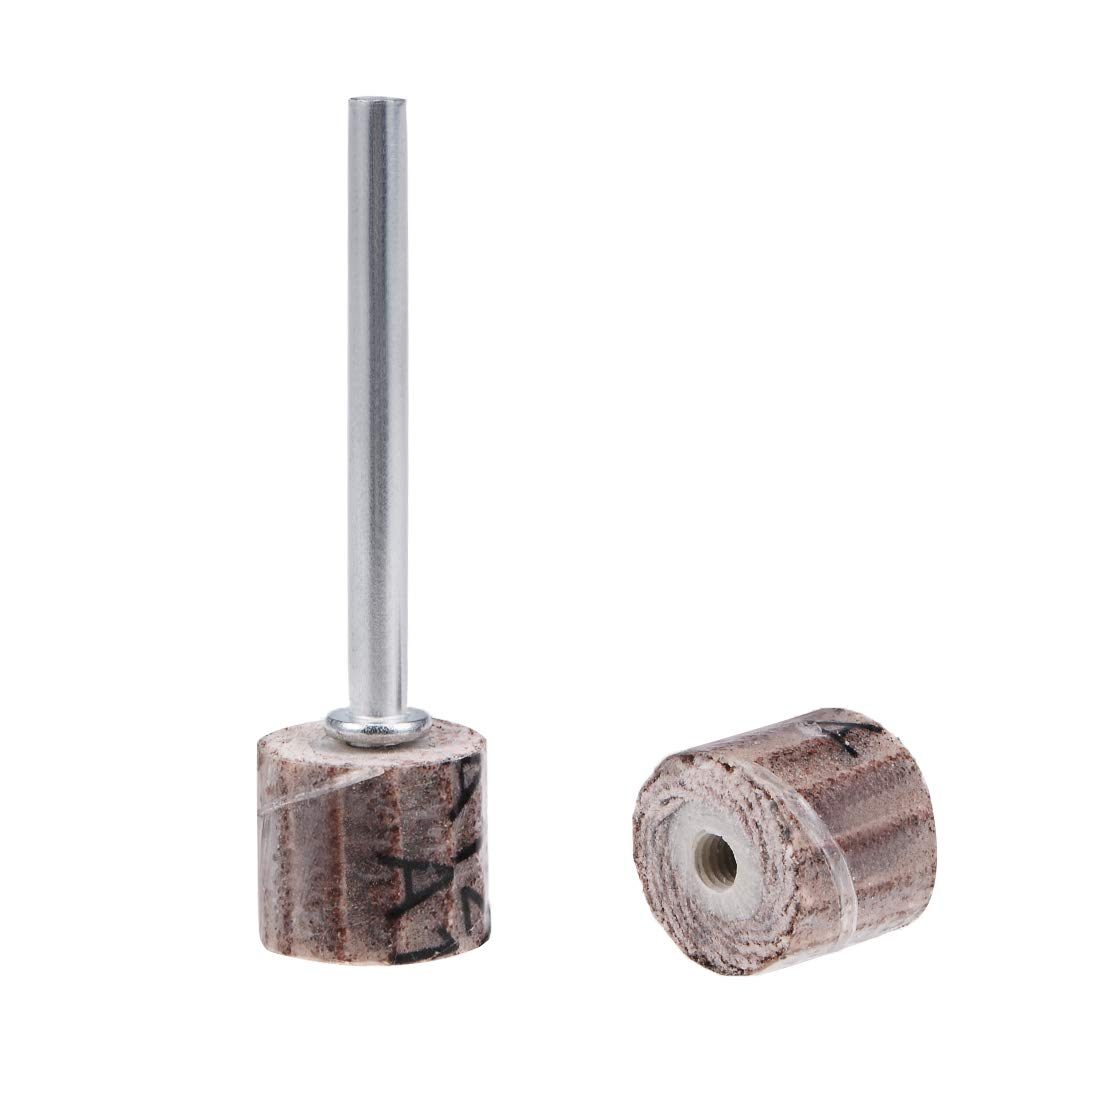 uxcell 2 Pcs 10x10mm Flap Wheel 120 Grits Abrasive Grinding Head with 1/8'' Shank for Rotary Tool